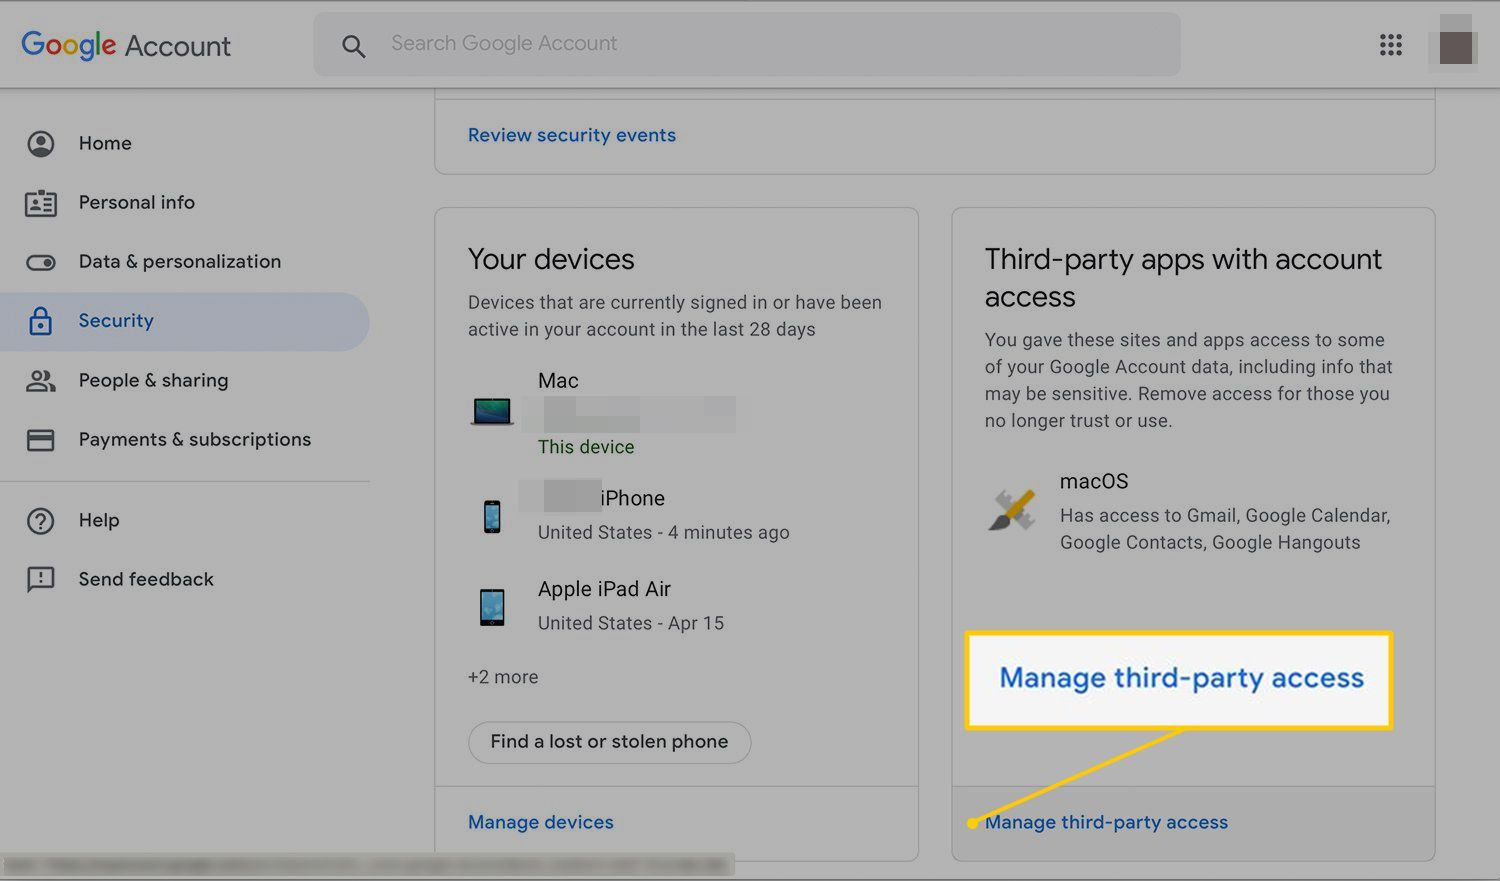 Manage third-party access link in Google Account